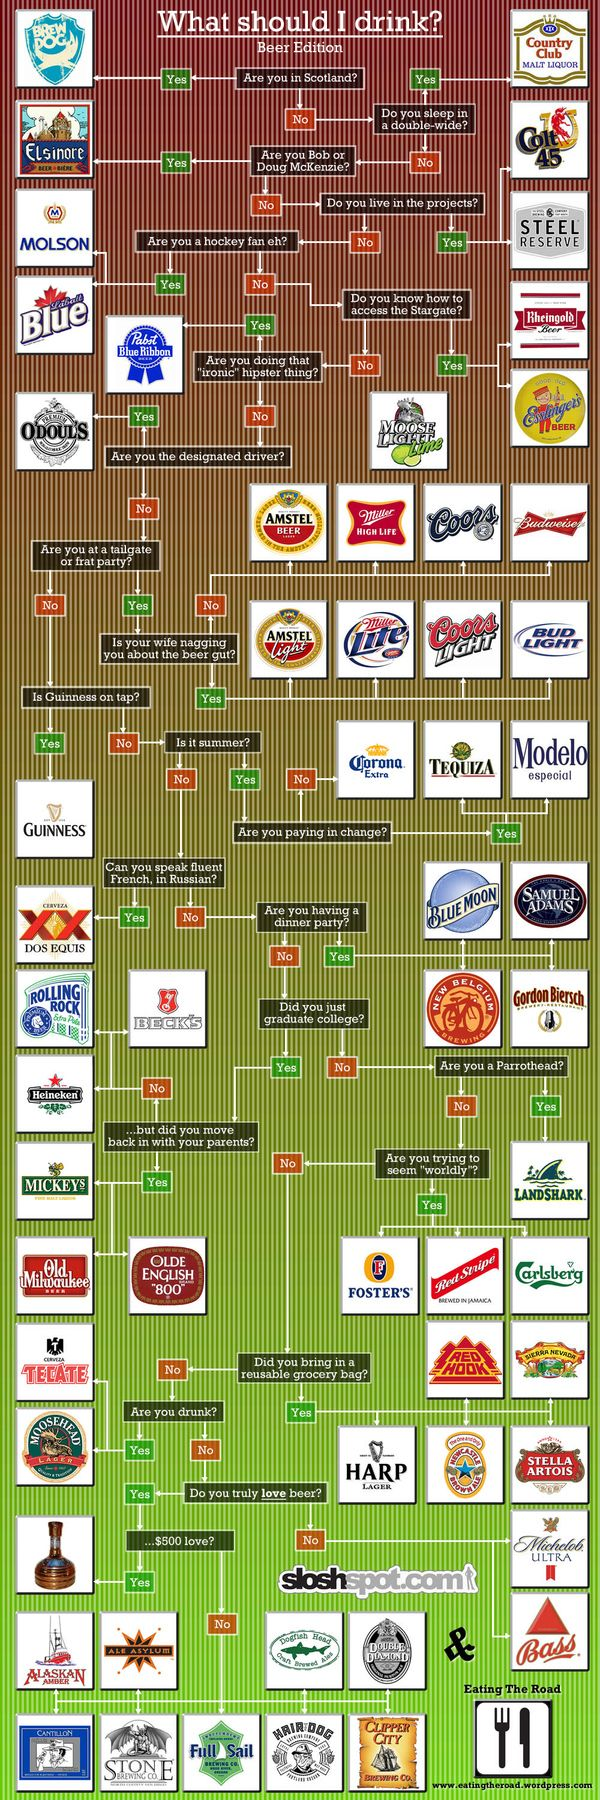 Infographics - What Should I Drink?